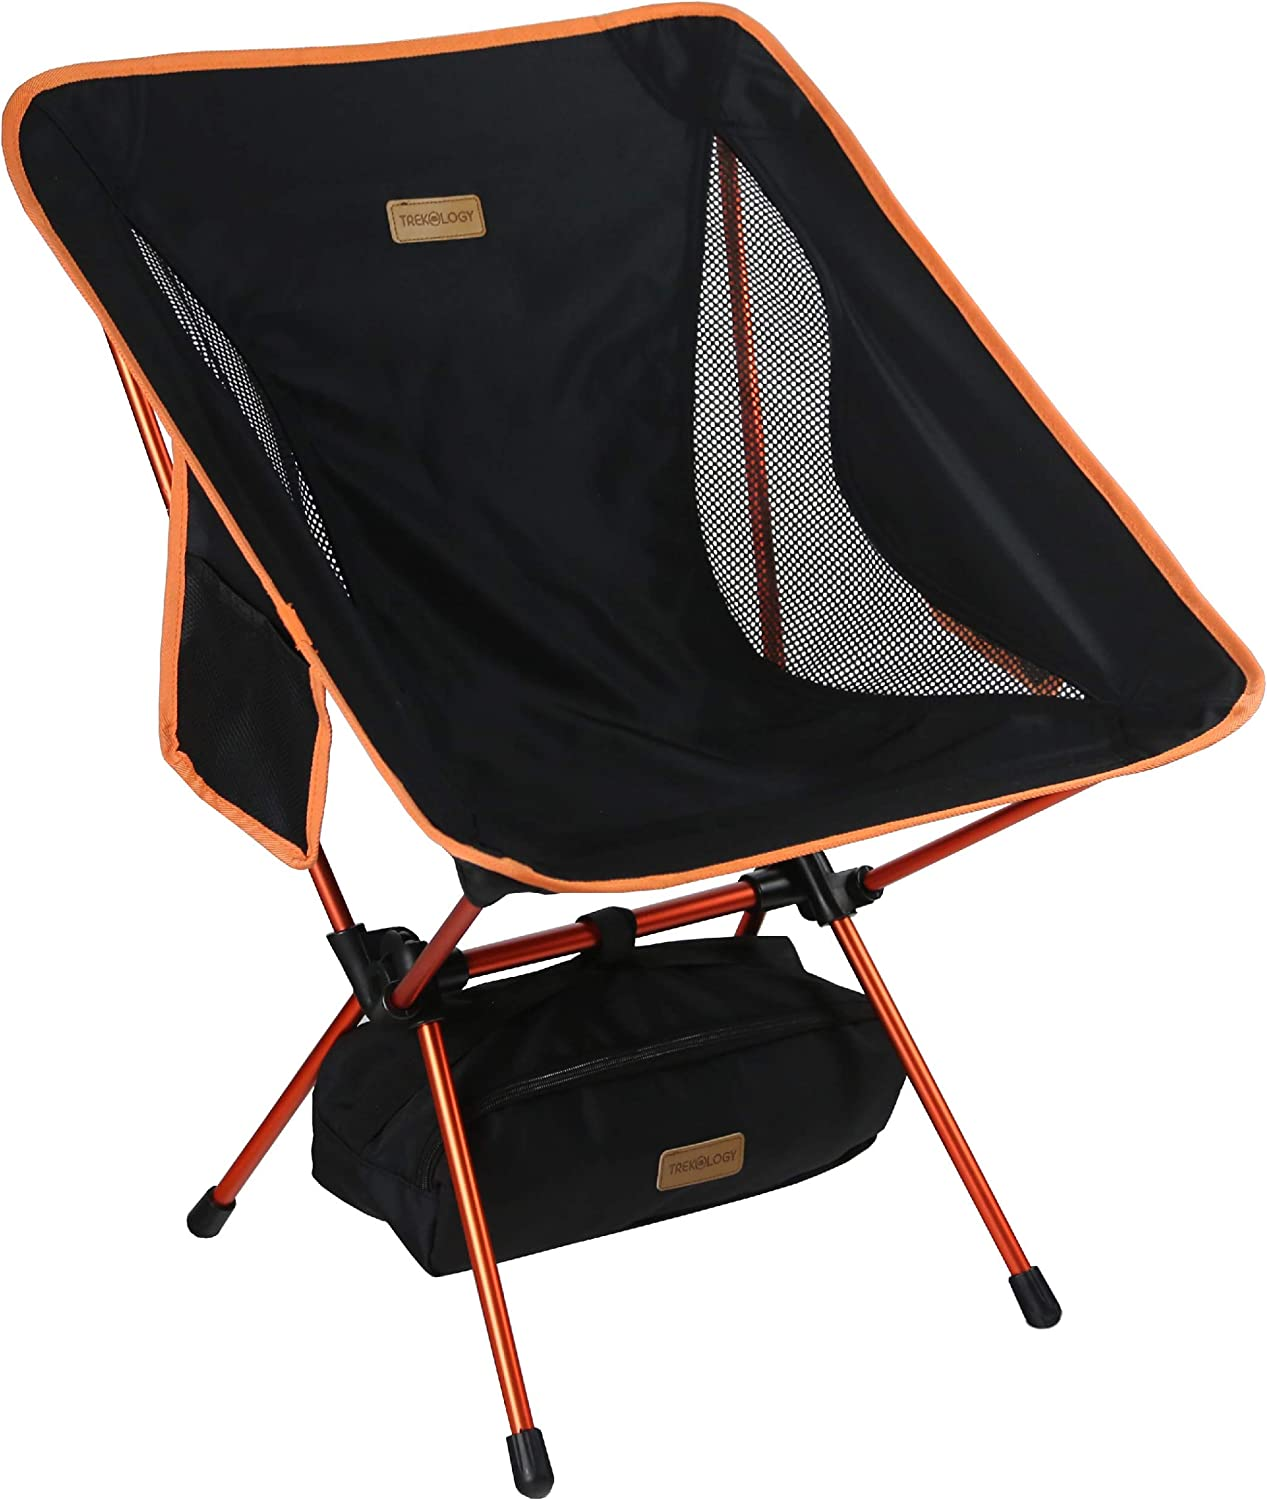 Portable Camping Chair Backpacking